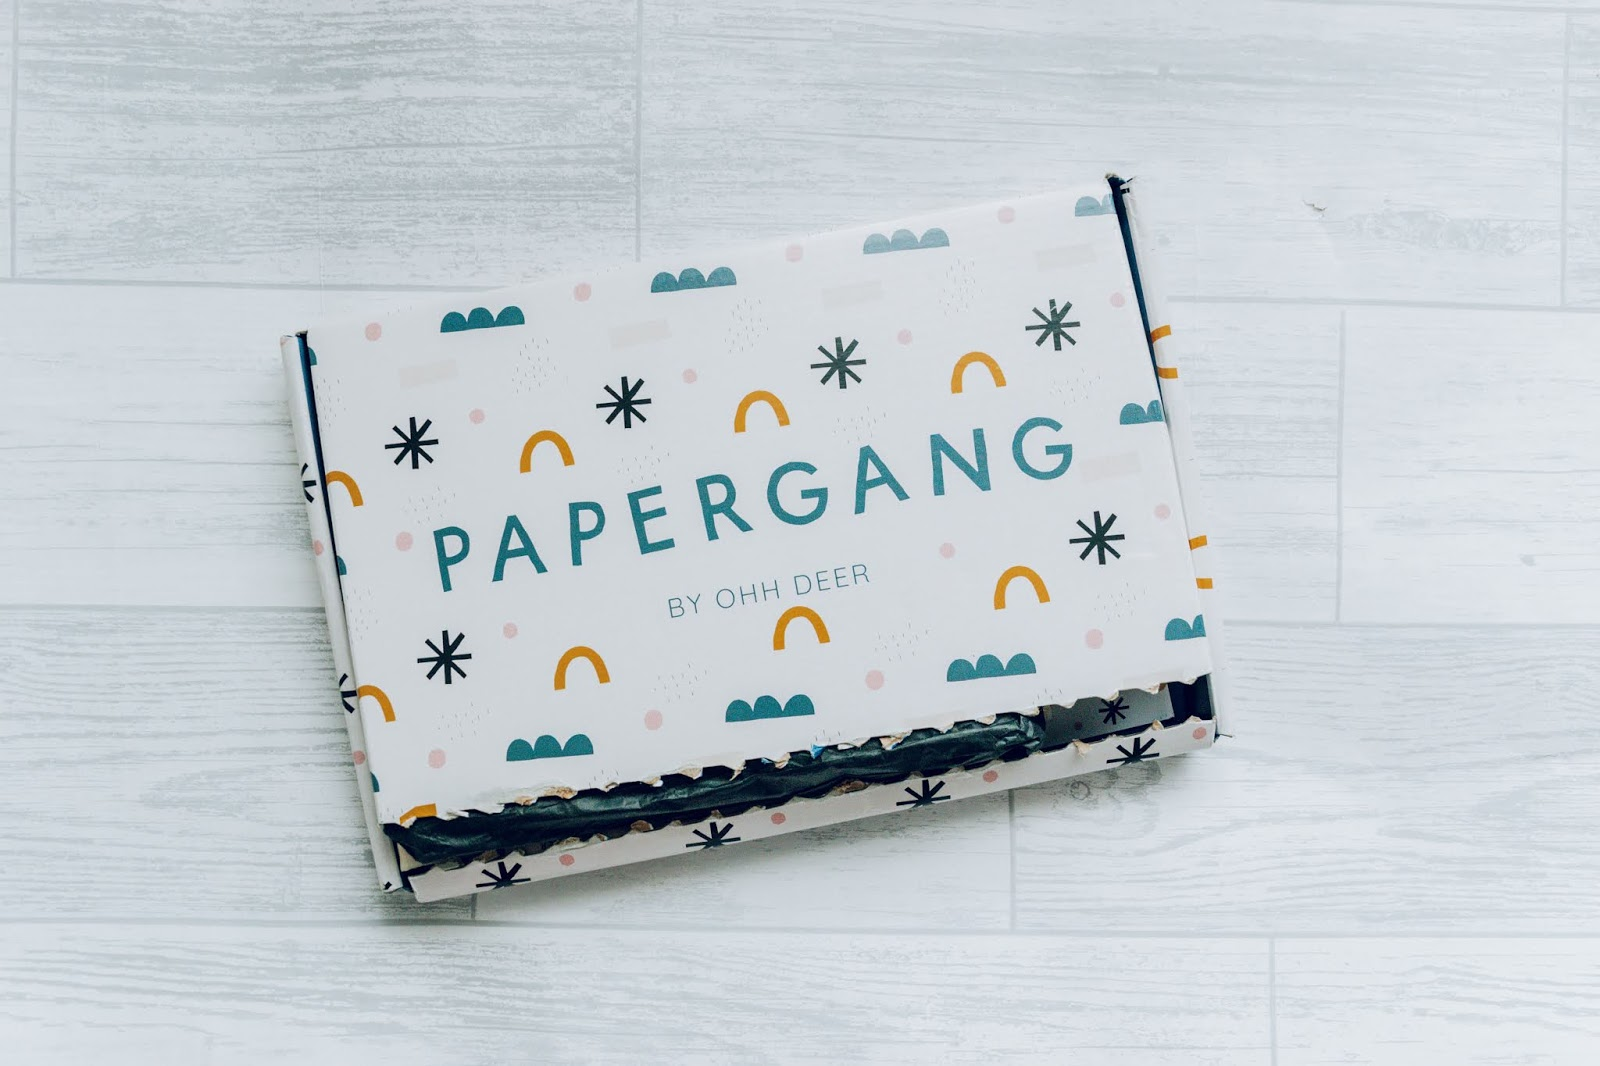 A Papergangbox closed on a white wood floor.